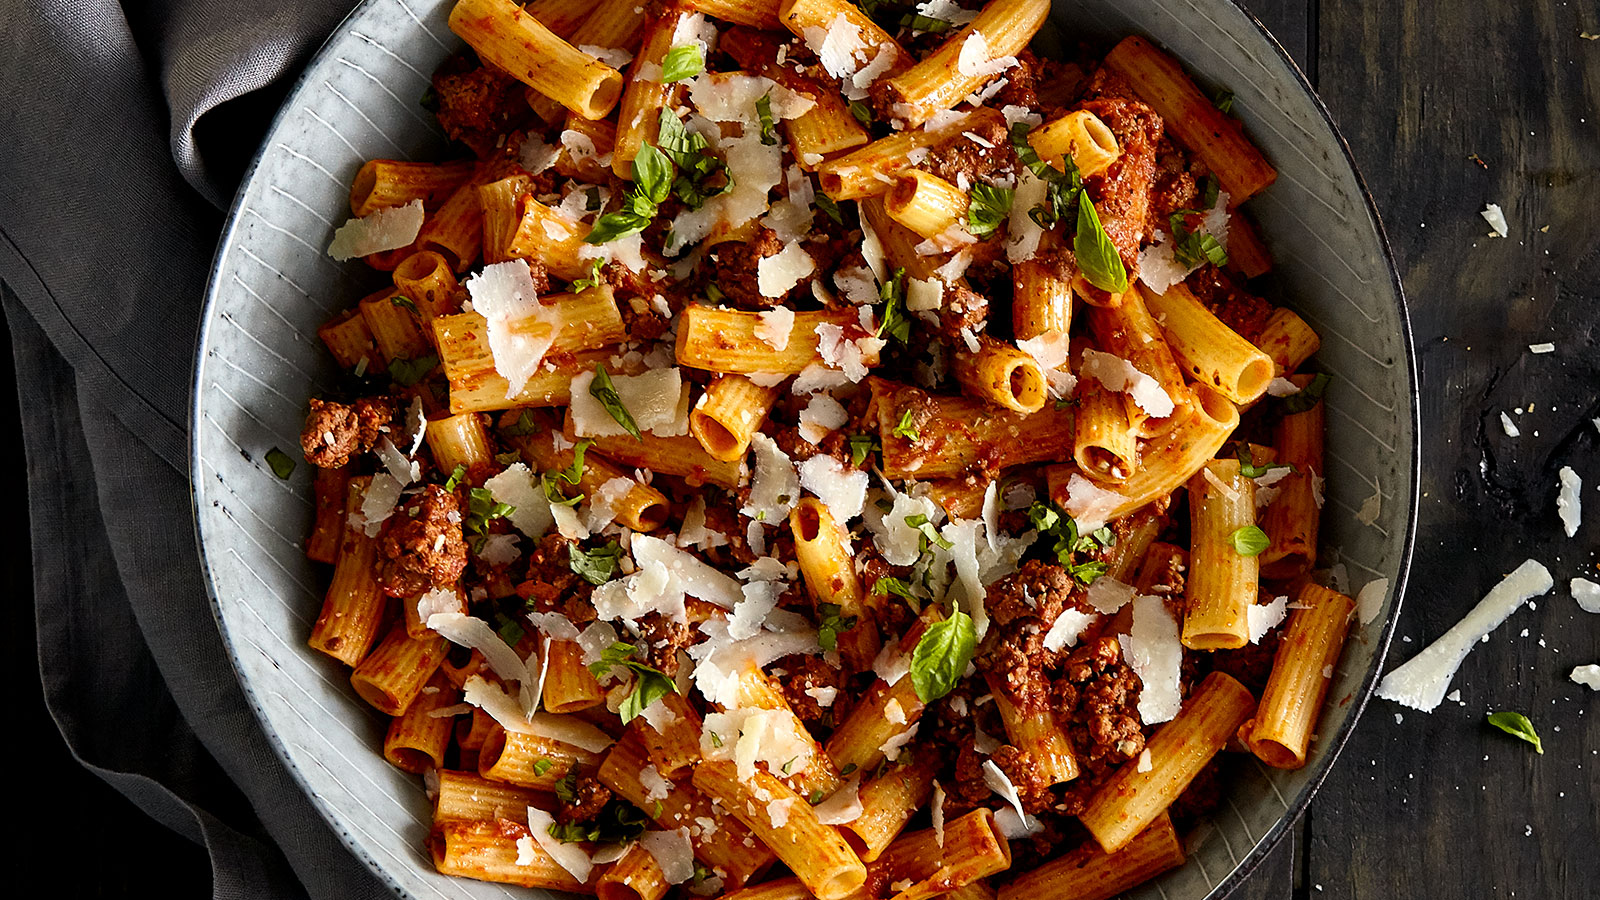 Rigatoni-with-Bolognese-Sauce-LBM